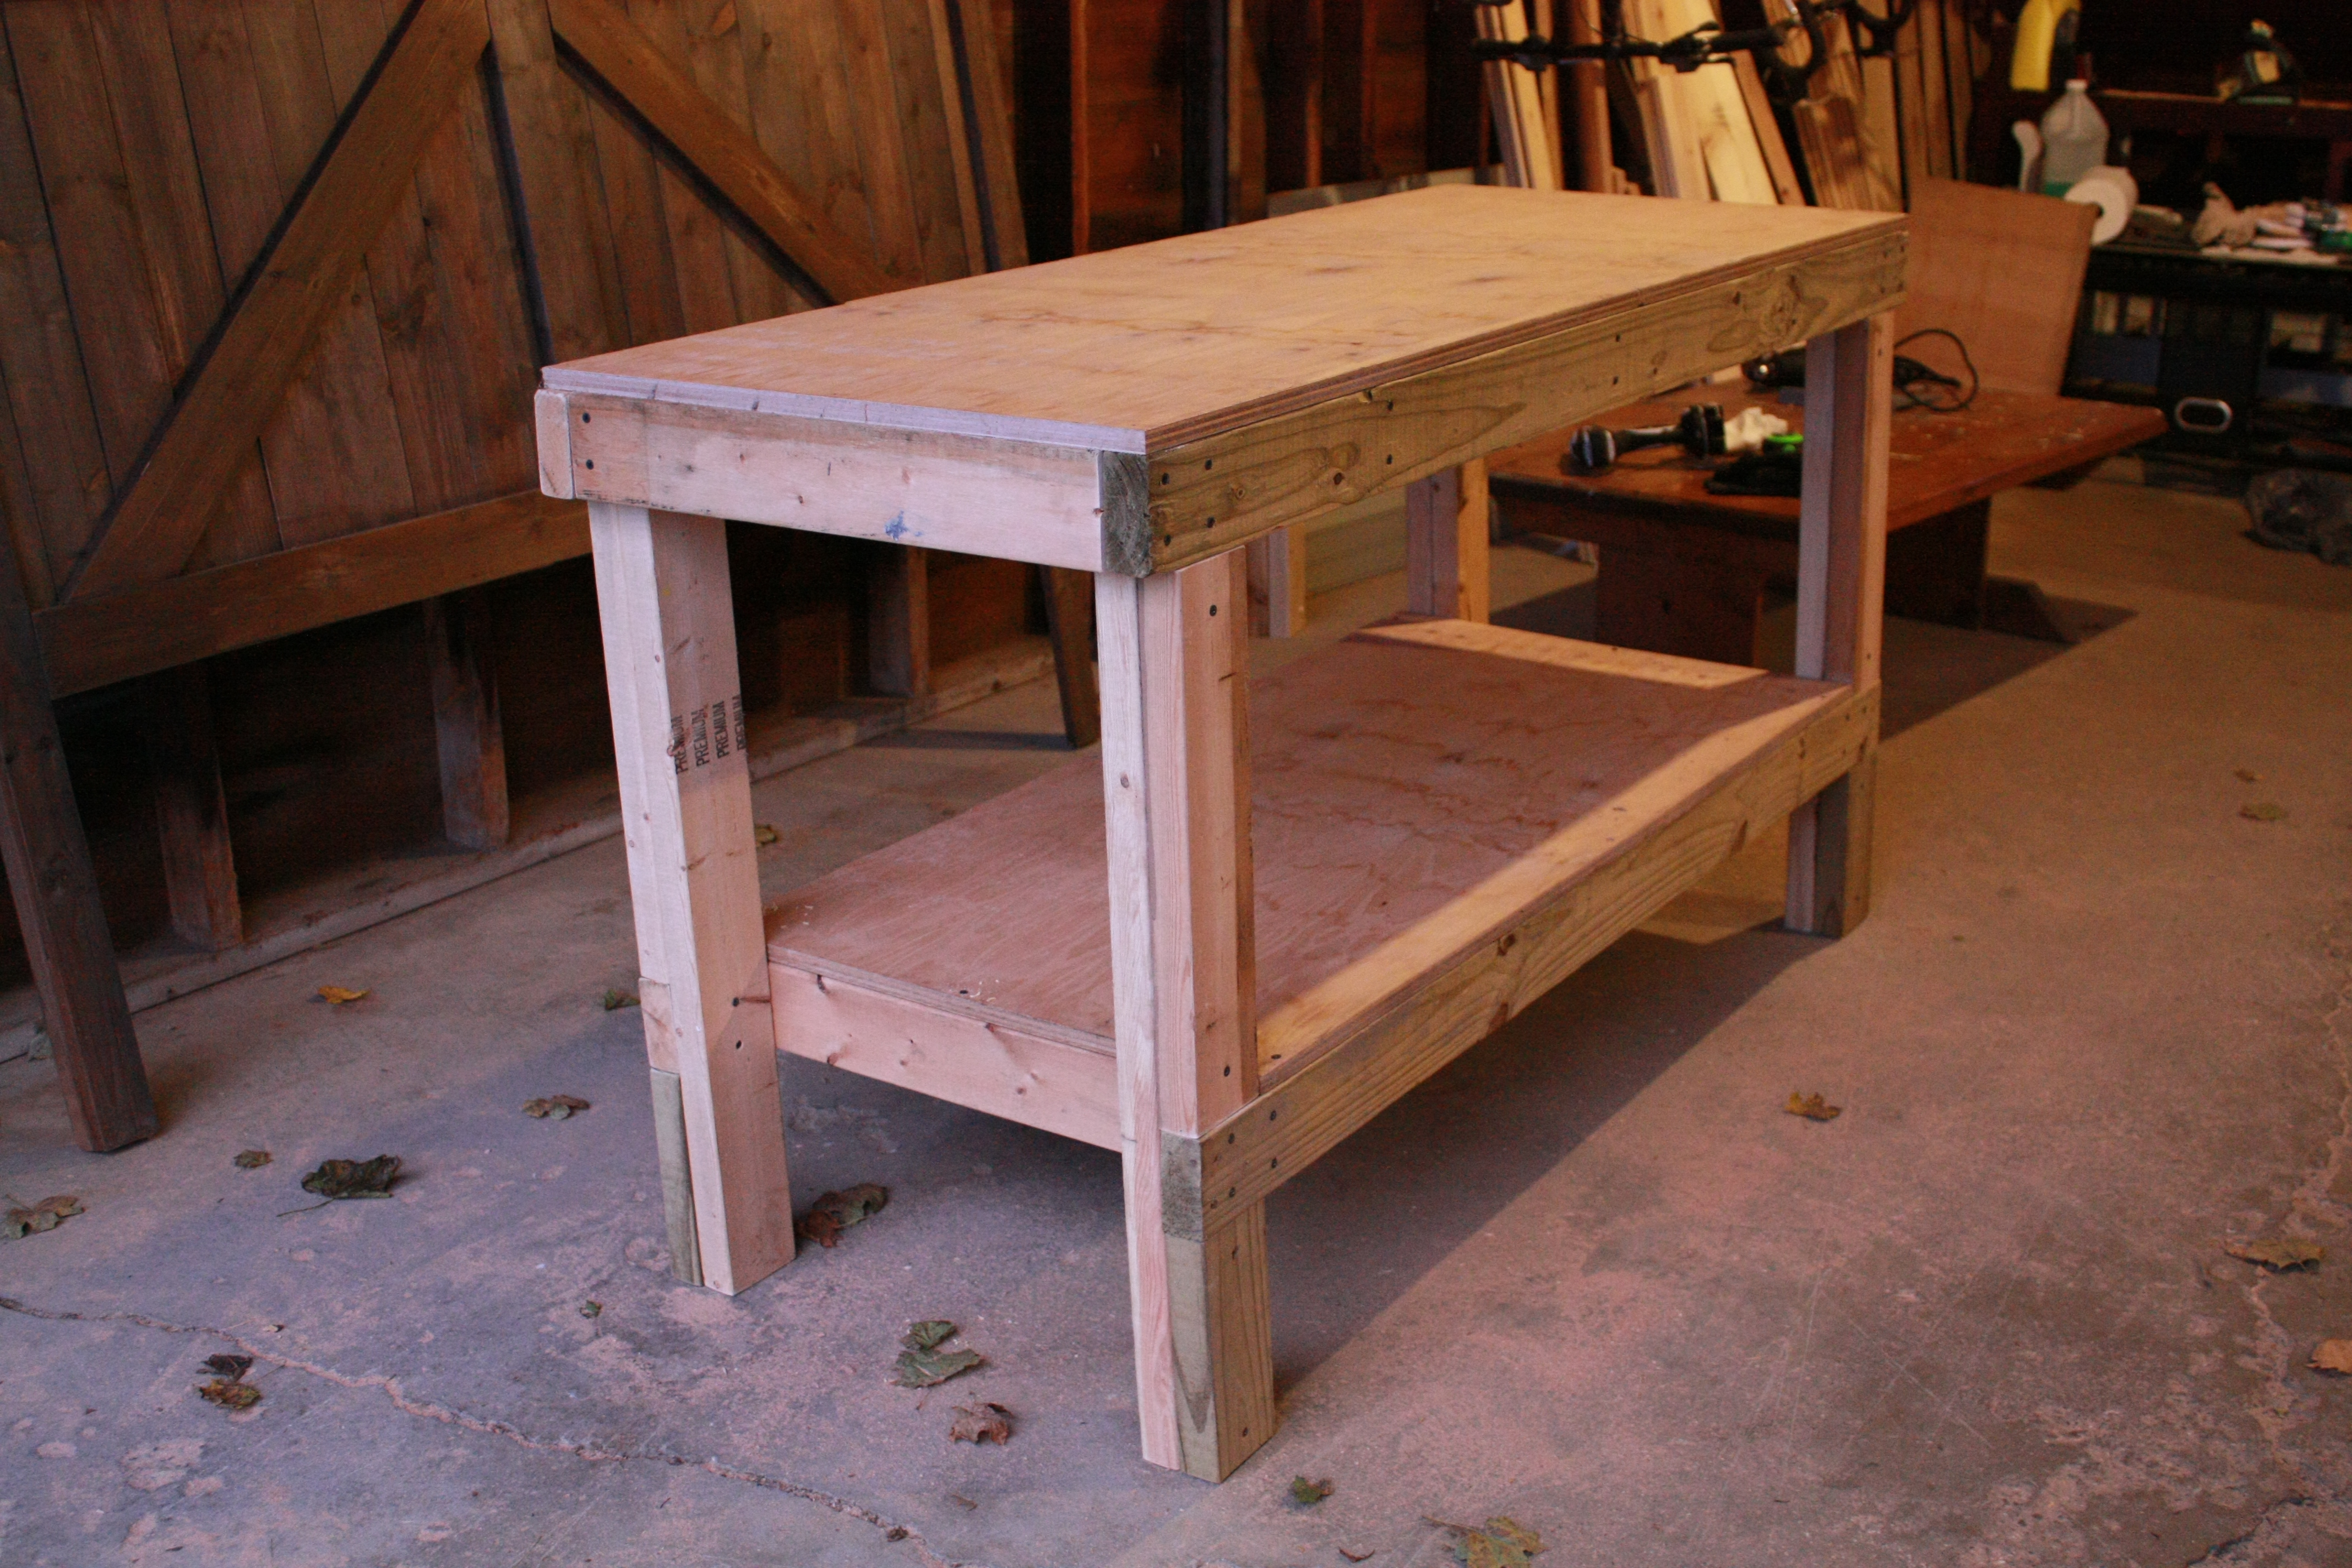 25 Diy Bunk Beds With Plans: Quick & Easy Workbench - DIY Projects